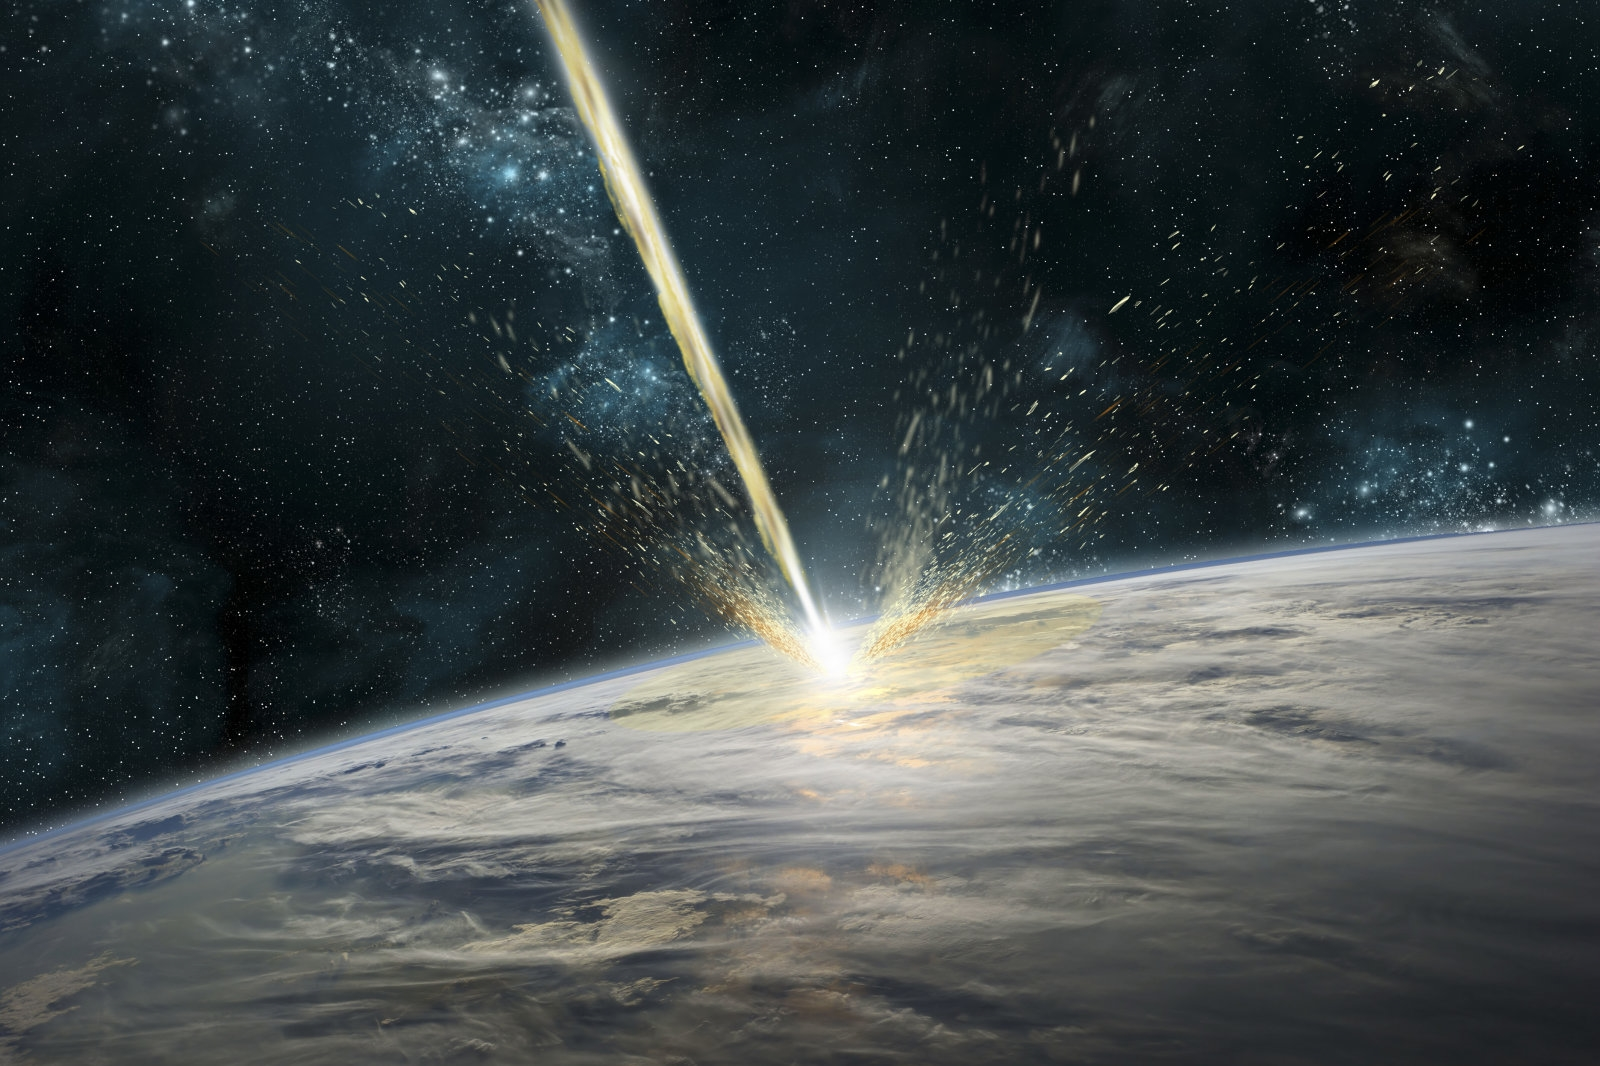 NASA and ESA will team up to deflect Earth-bound asteroids | DeviceDaily.com